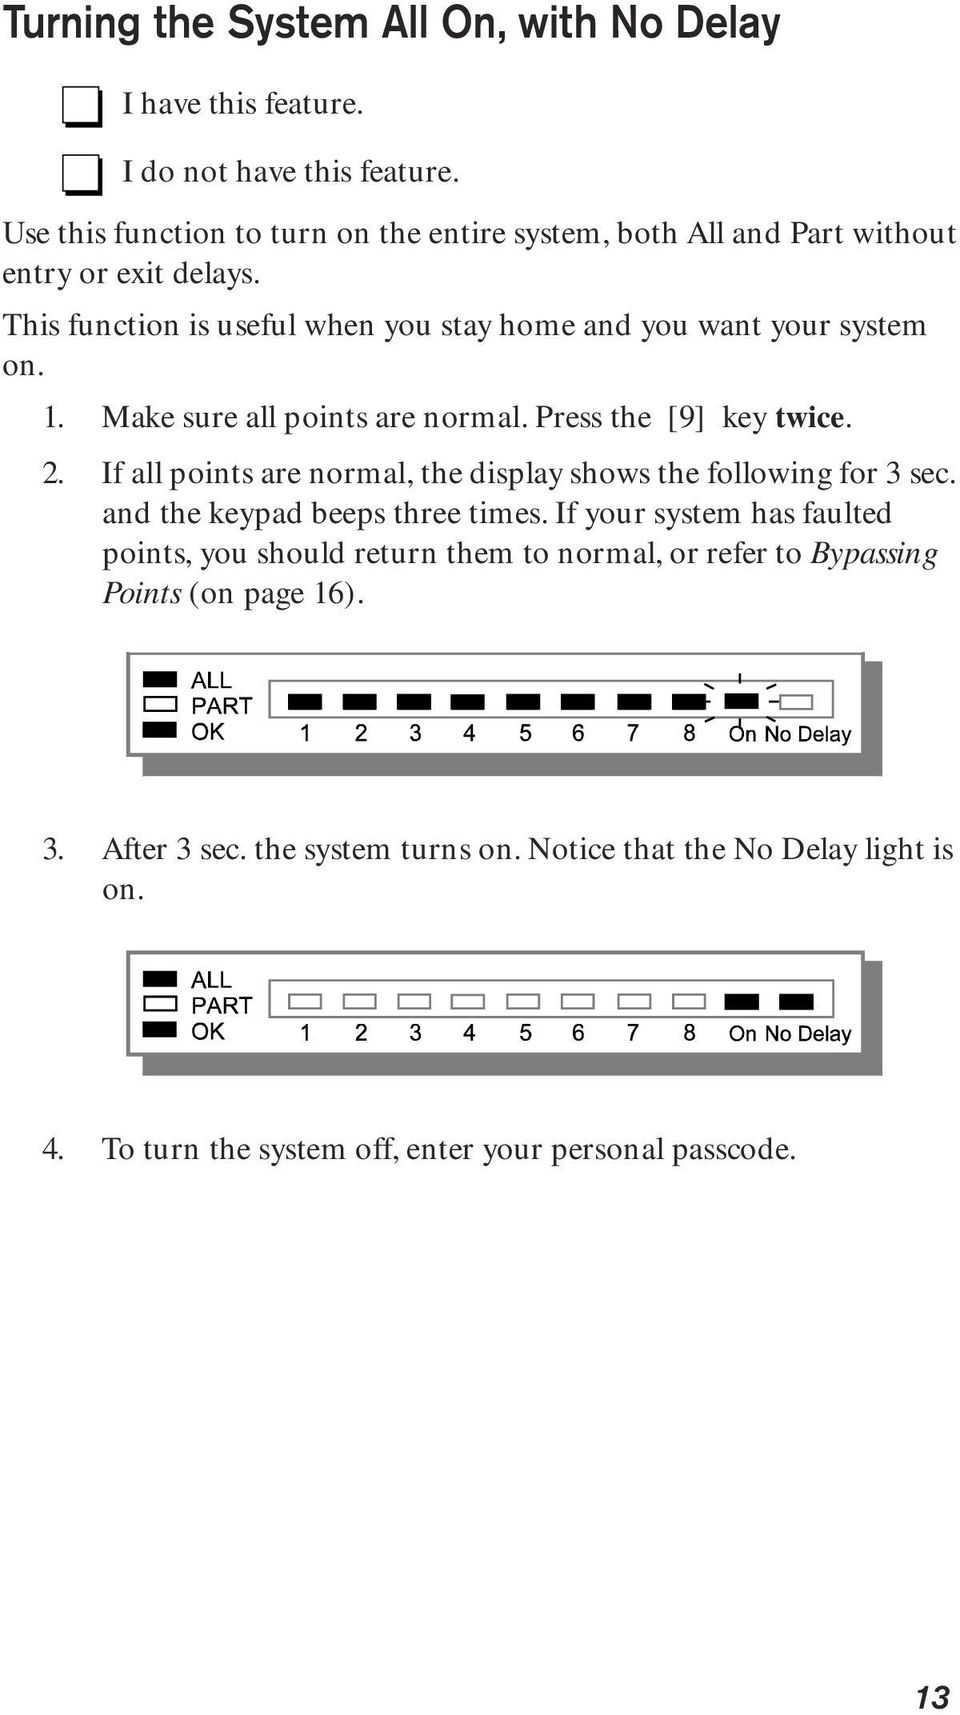 1. Make sure all points are normal. Press the [9] key twice. 2. If all points are normal, the display shows the following for 3 sec. and the keypad beeps three times.